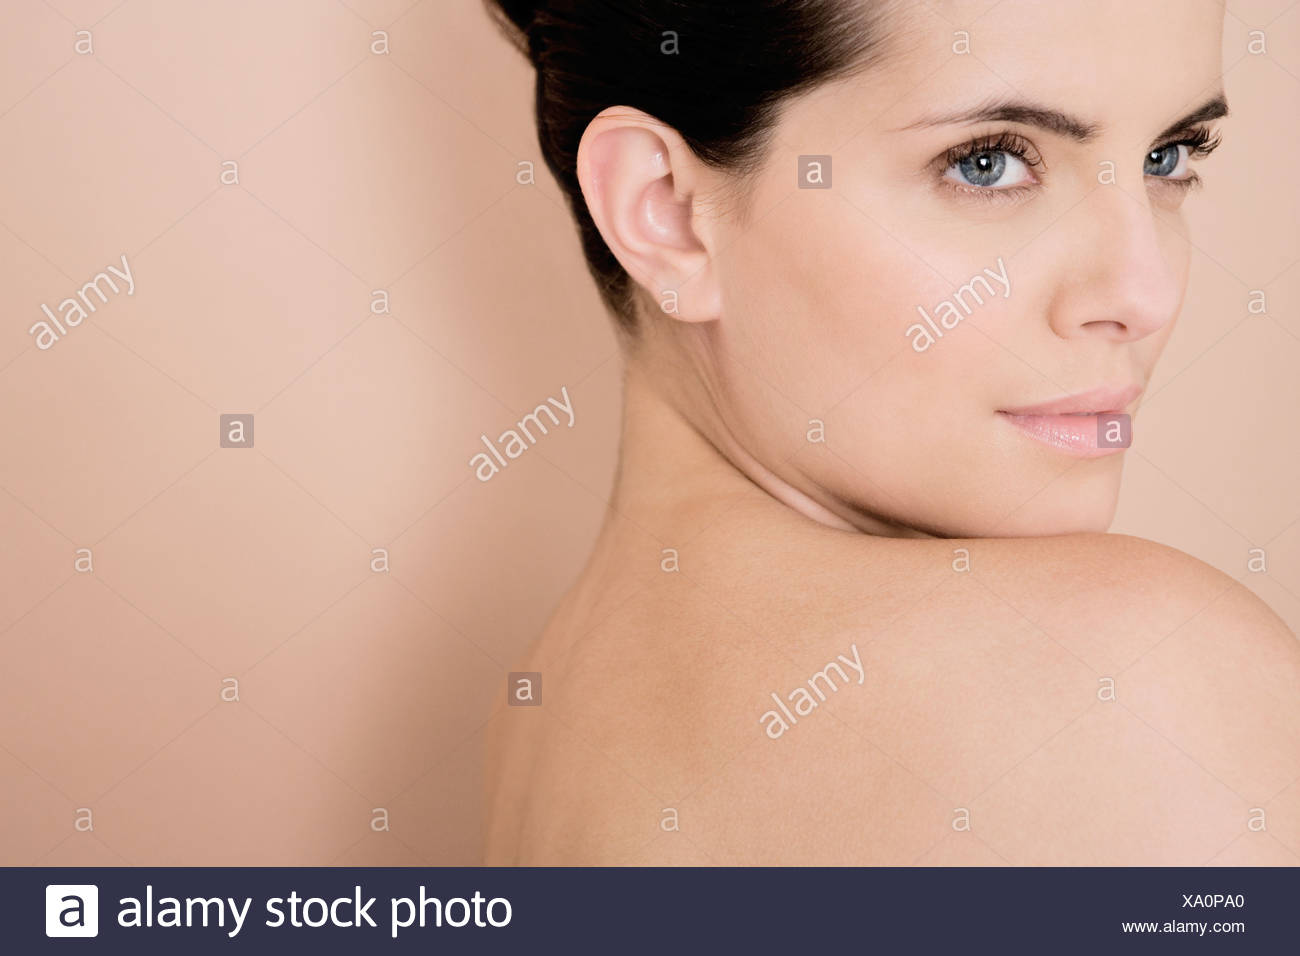 Portrait of a young woman looking over her bare shoulder - Stock Image